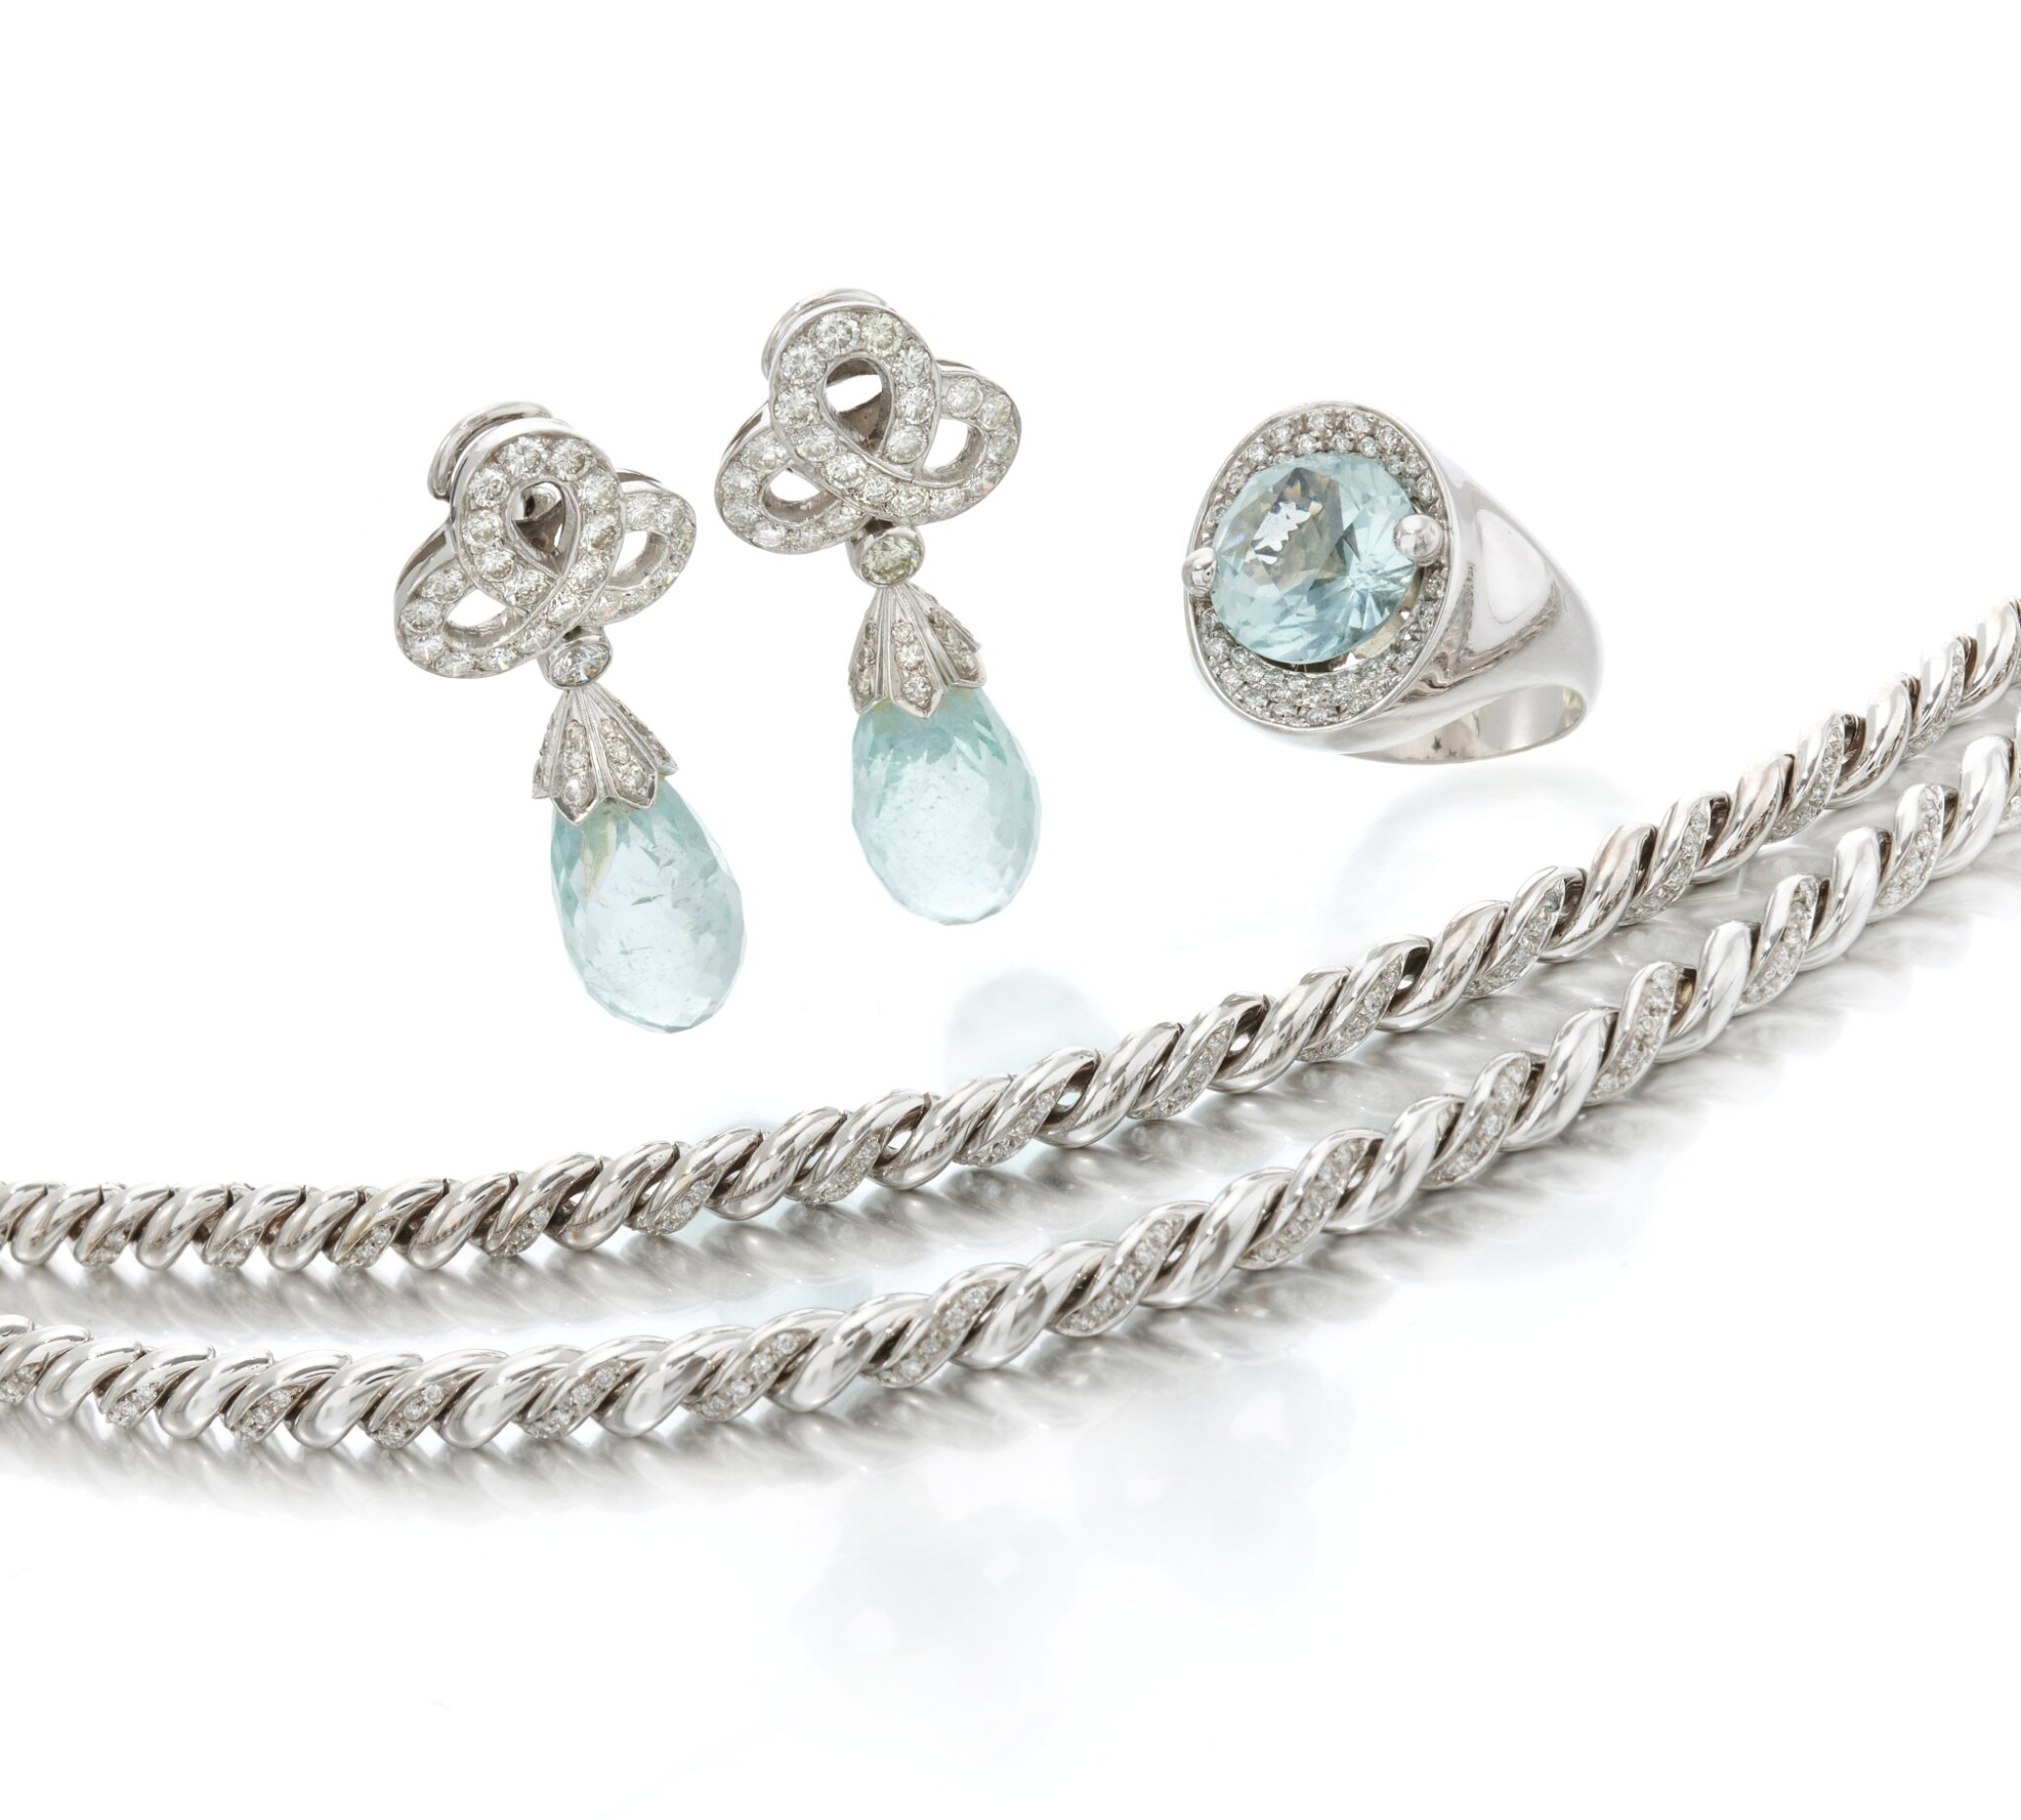 View 1 of Lot 135. Pair of diamond bracelets and aquamarine and diamond demi-parure (Coppia di bracciali in diamanti e demi-parure con acquamarine e diamanti).